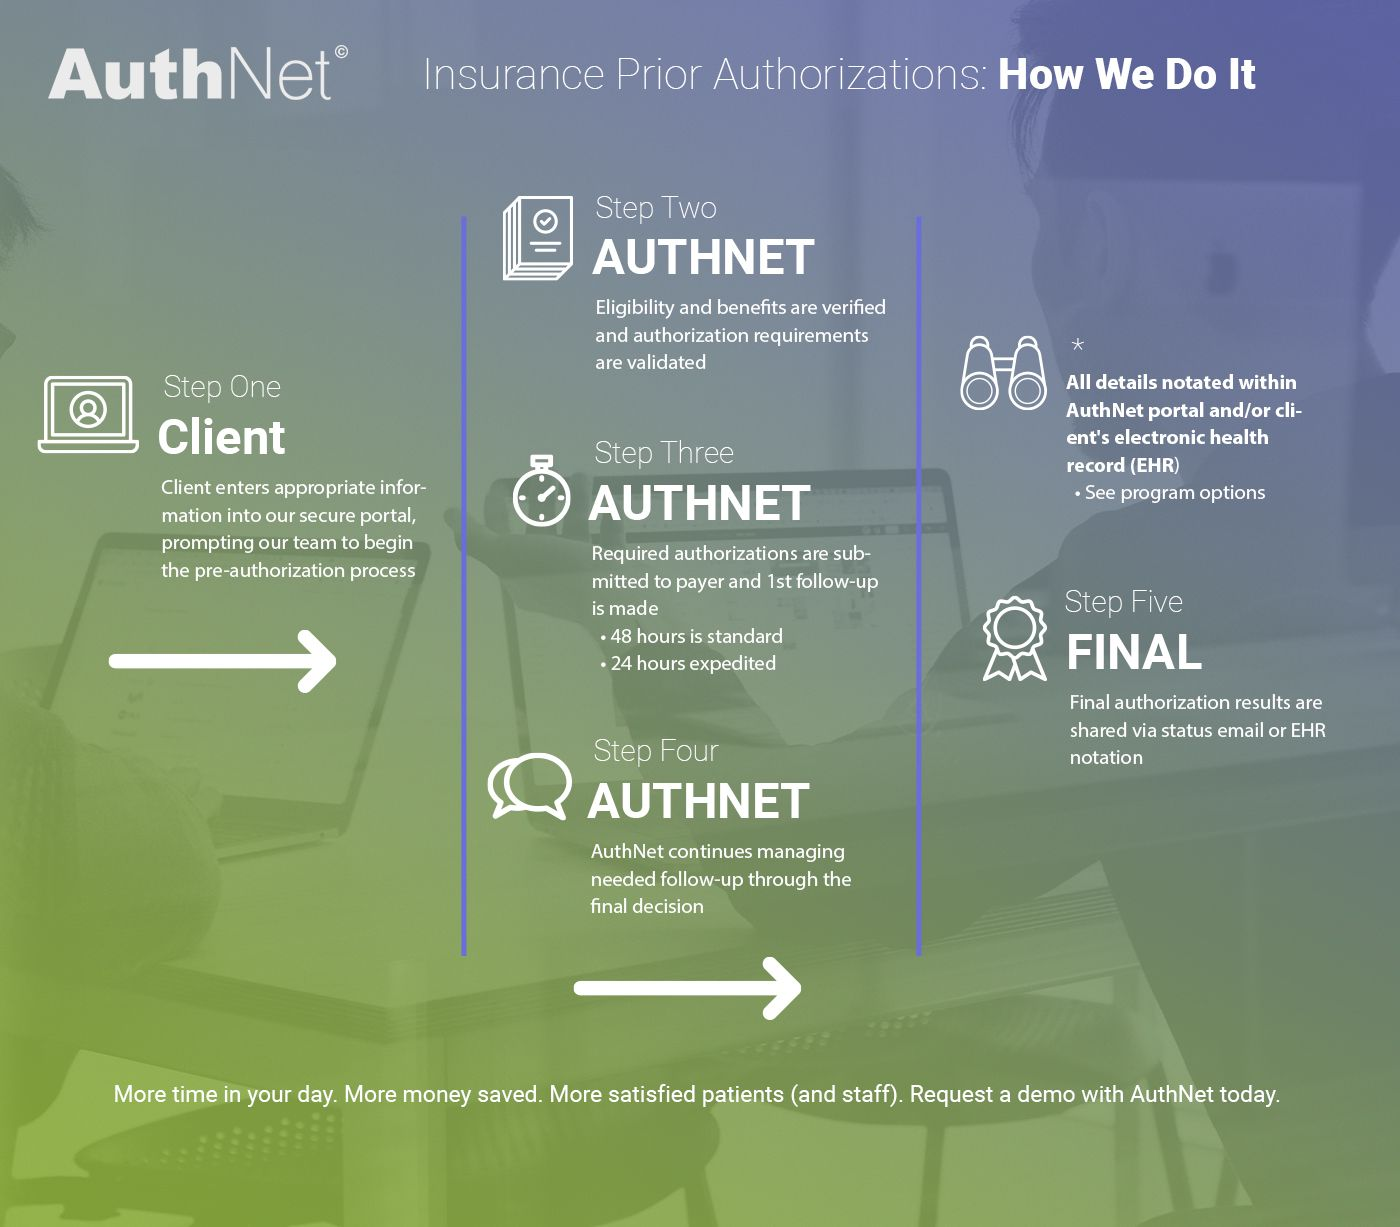 Insurance-Prior-Authorizations-How-We-Do-It-5f4f347fc67ba.jpg